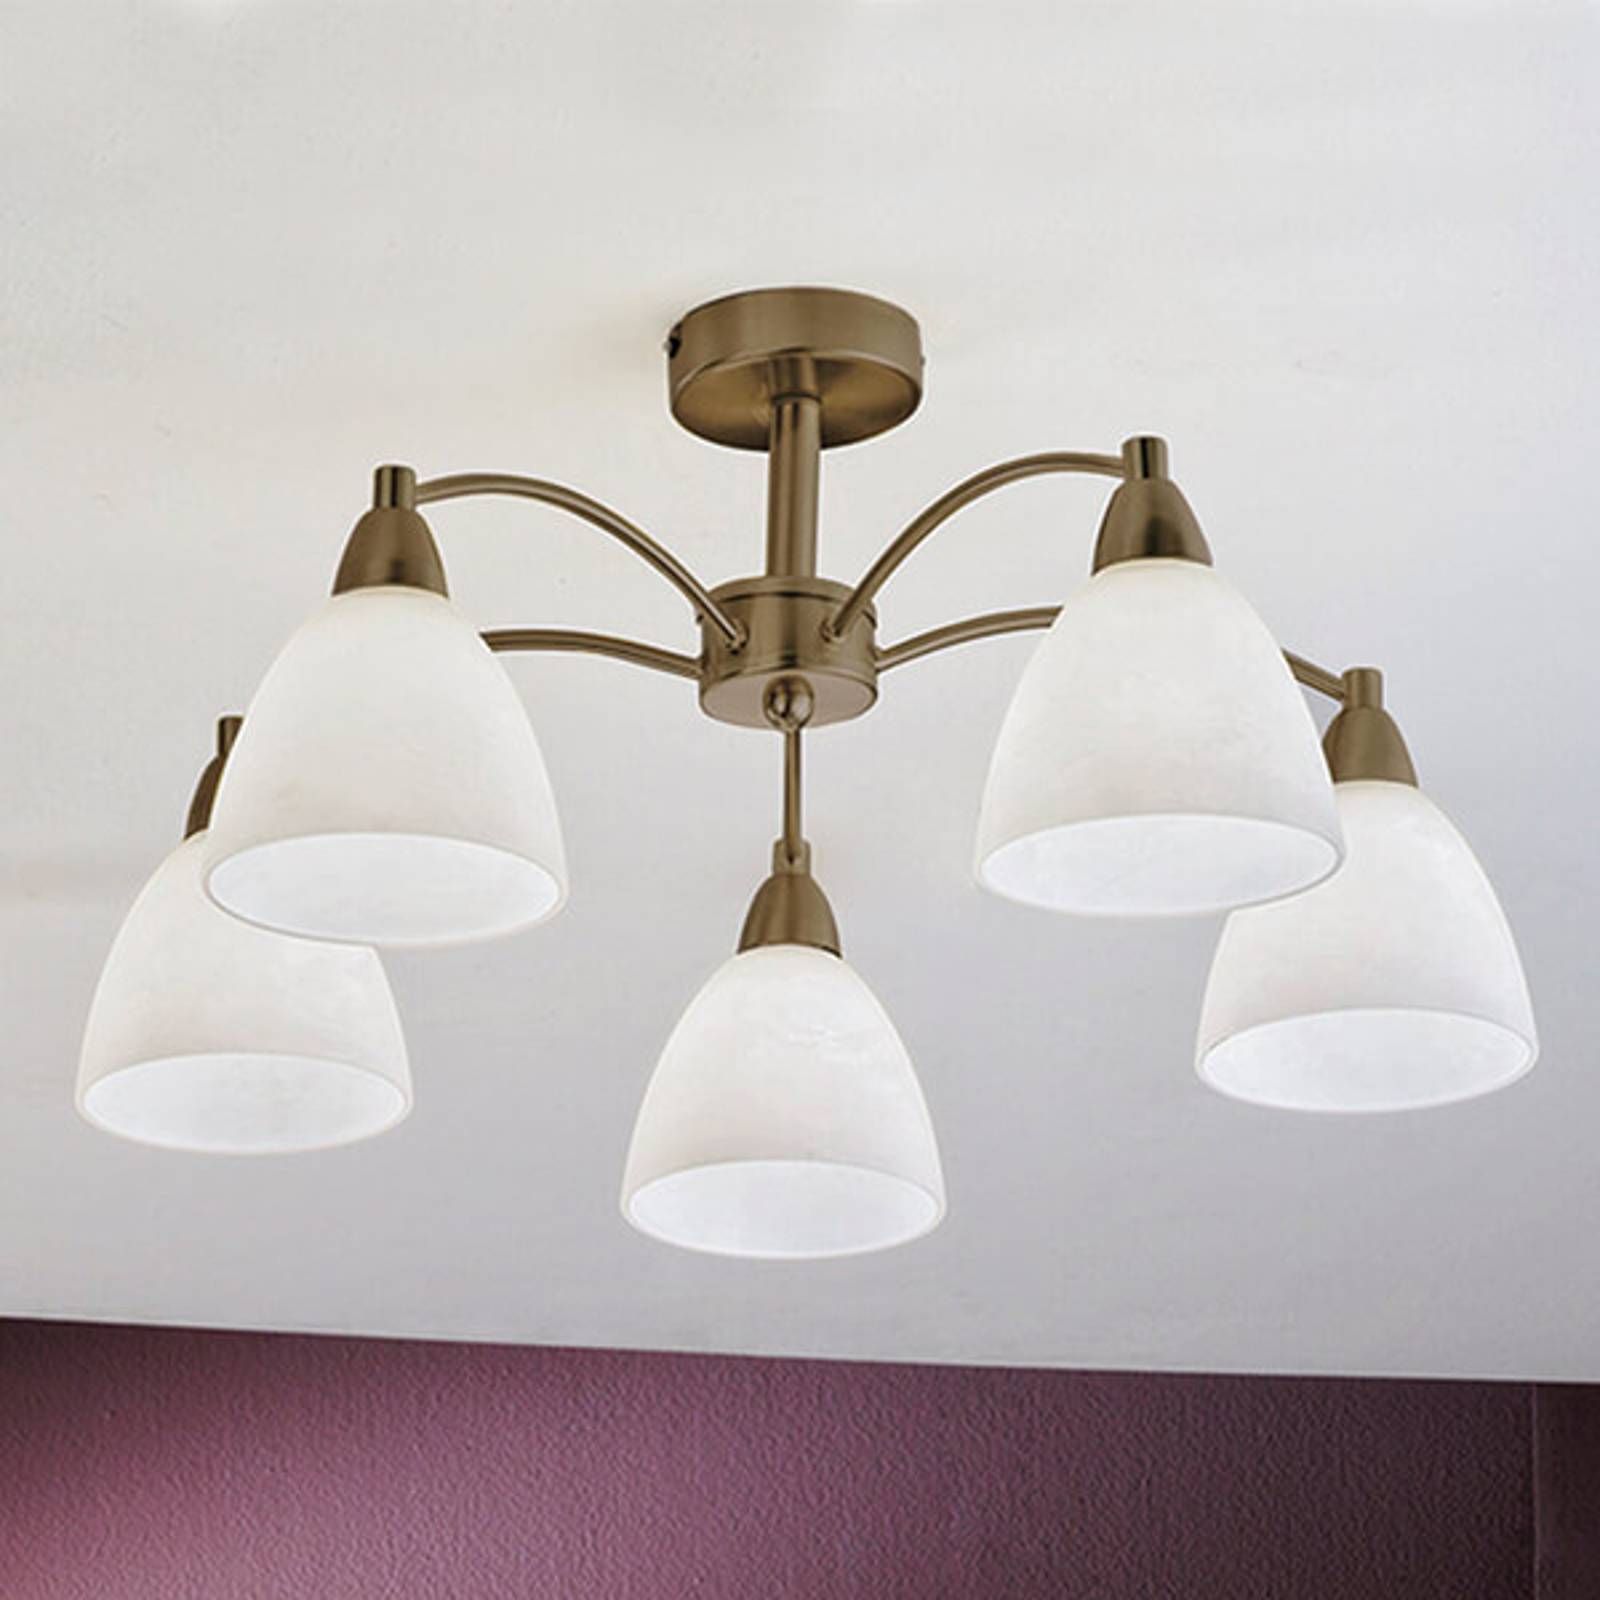 Deckenlampe Kinga, altmessing, 5-flammig von Orion